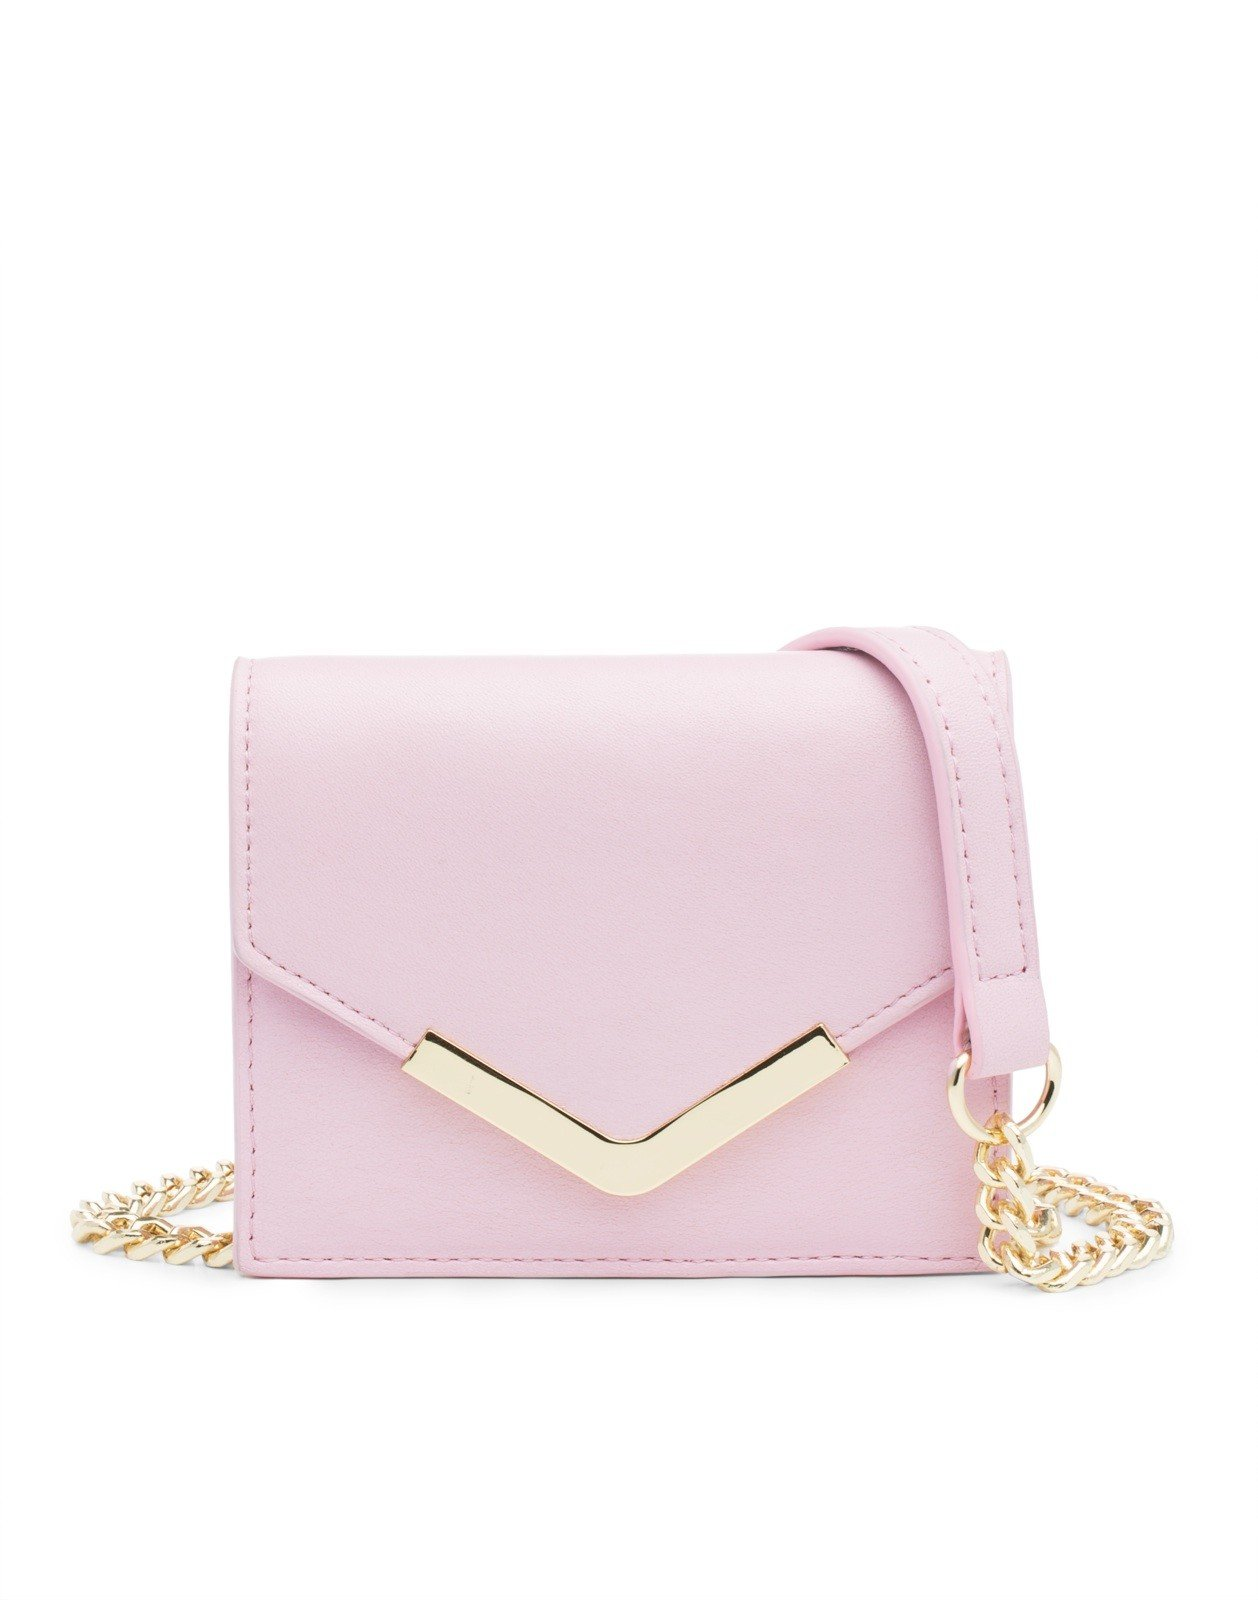 cynthia rowley mini cross solid in pink light pink